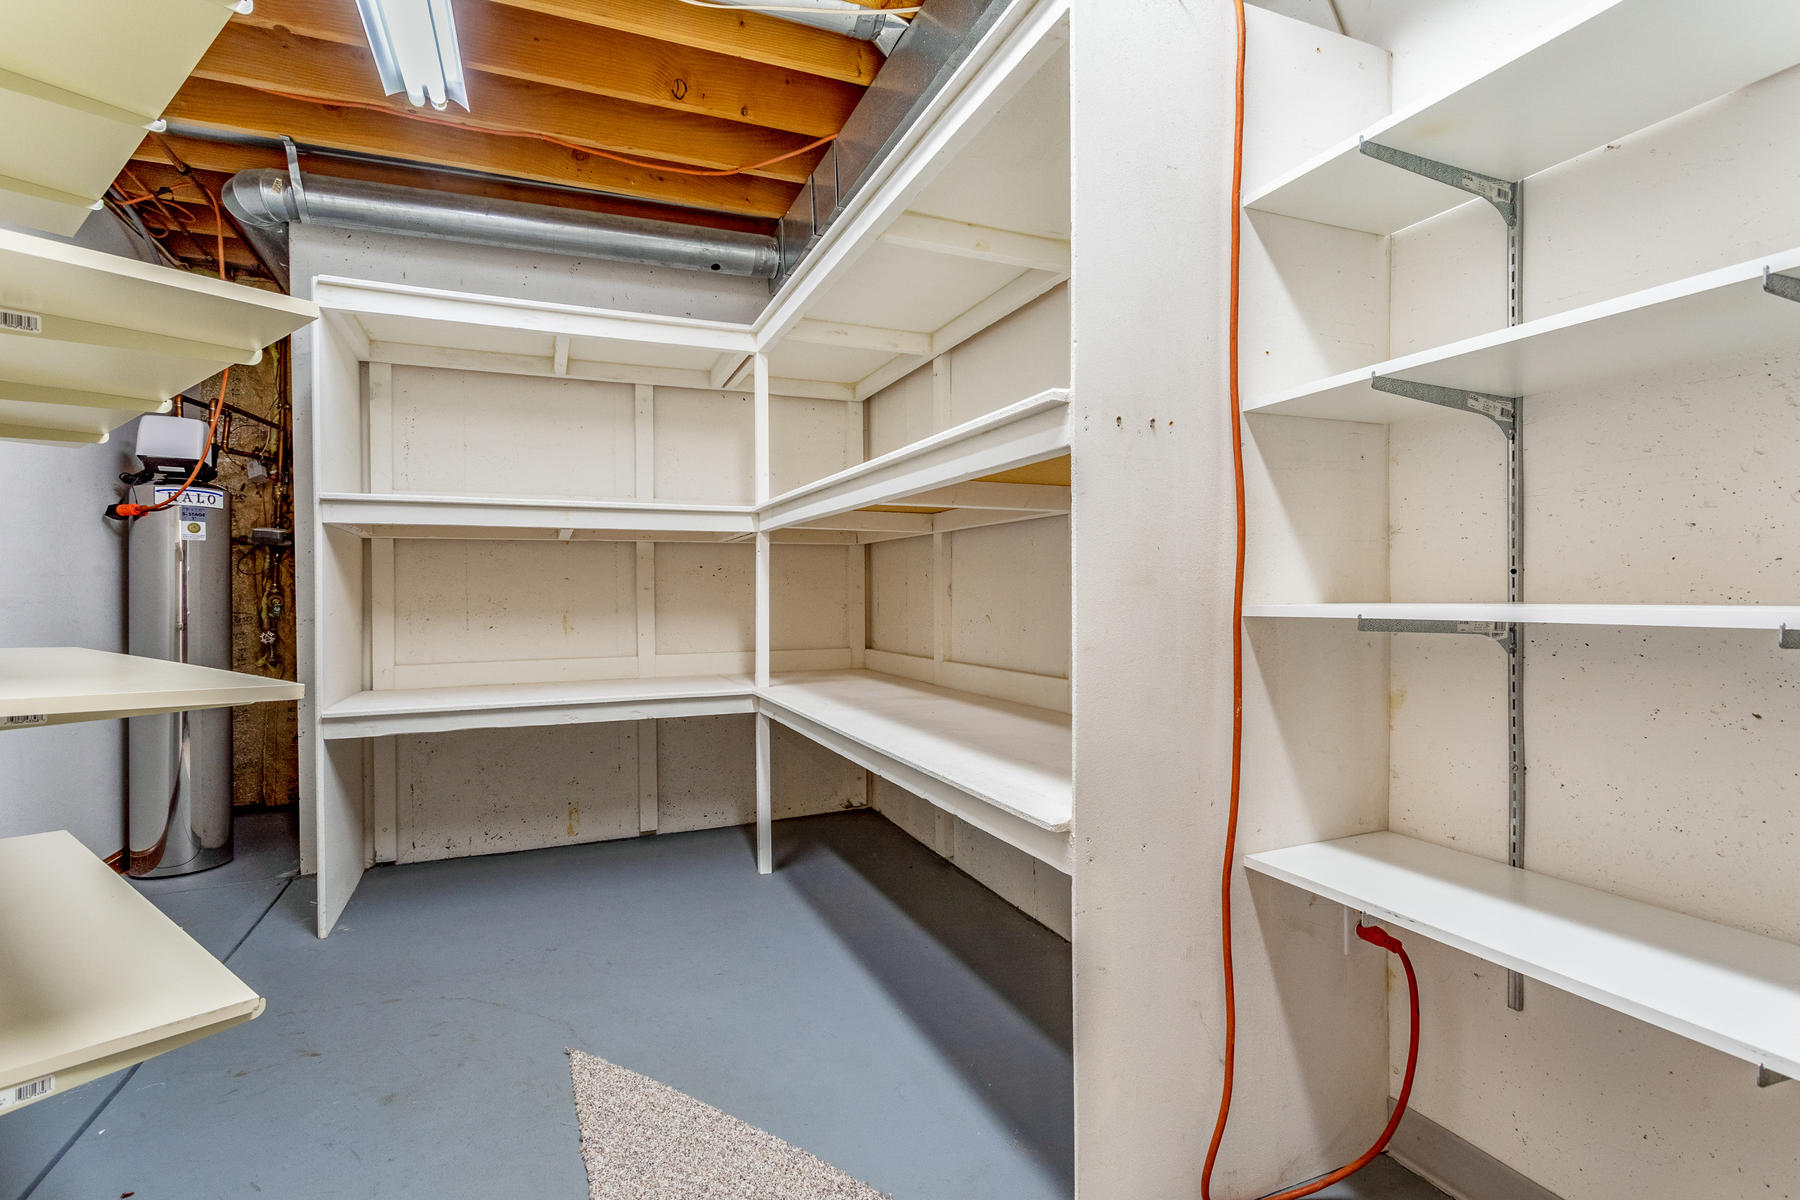 One of Several Nice Sized Storage Rooms in Basemnt